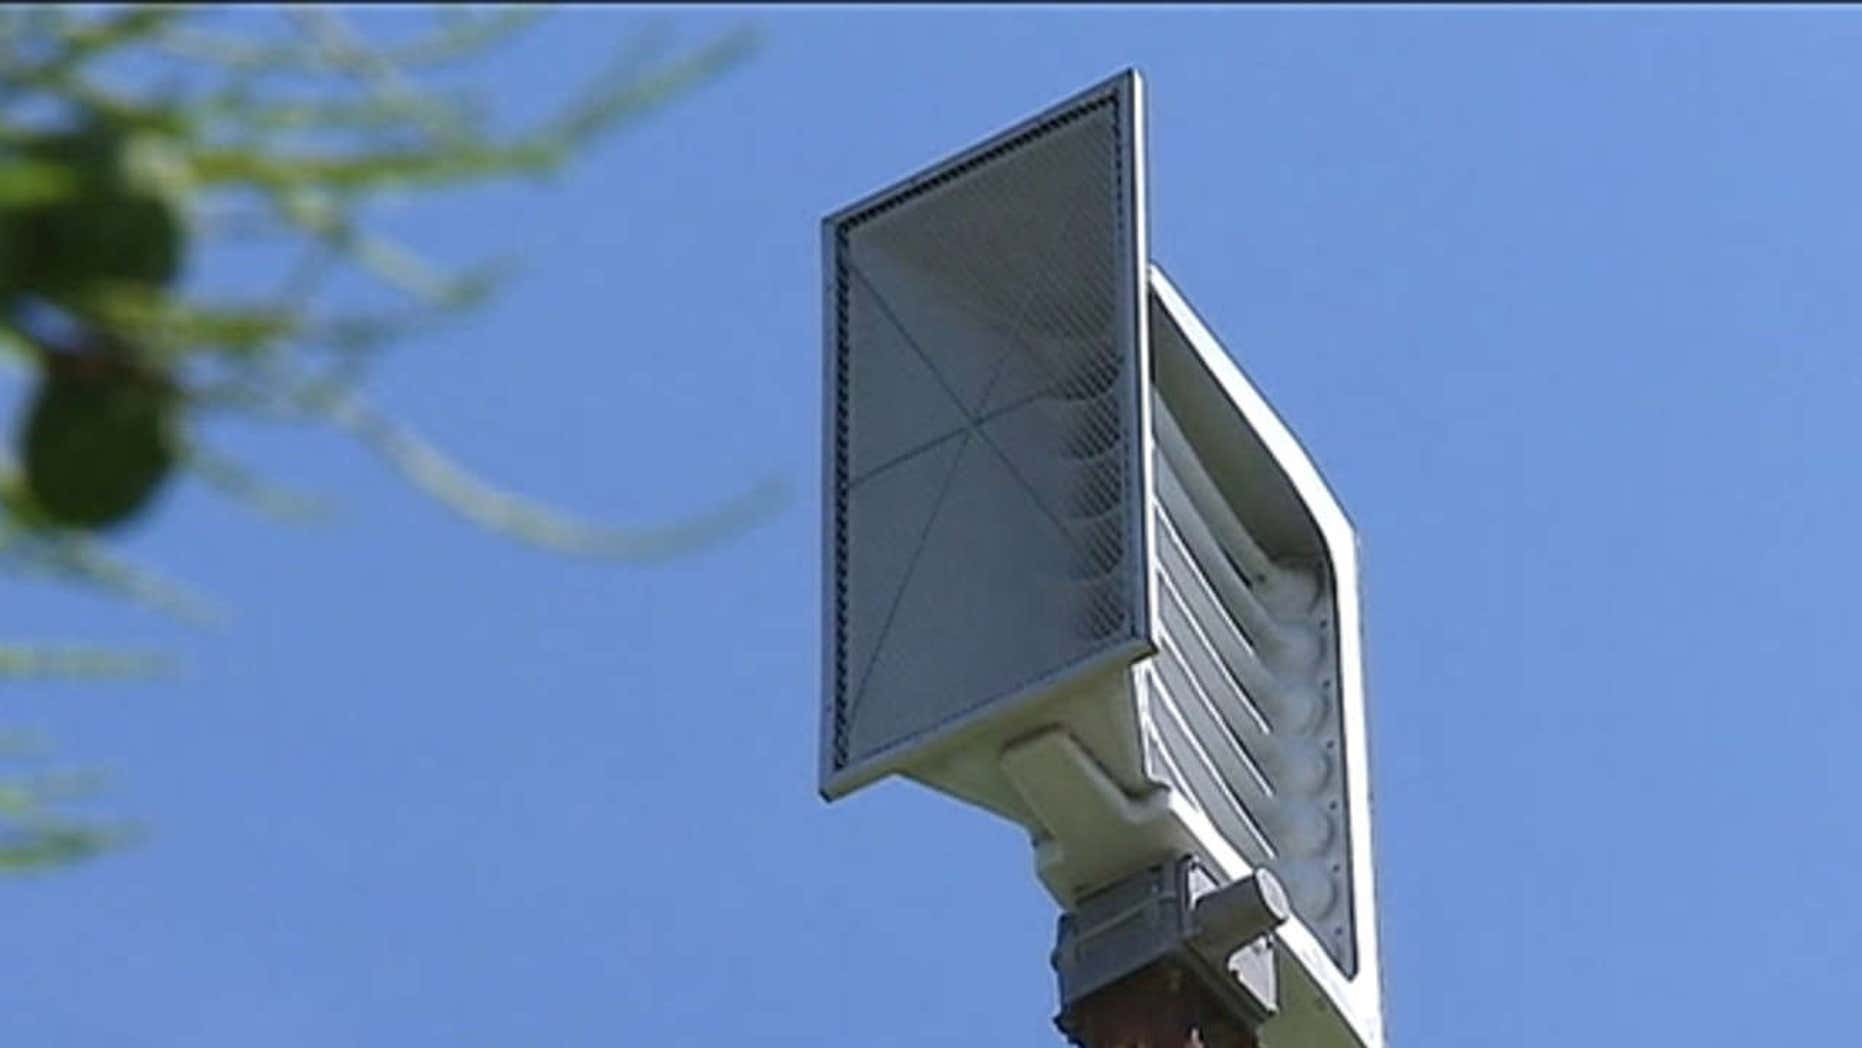 Hackers were responsible for tornado sirens sounding across Dallas Friday night, officials said.